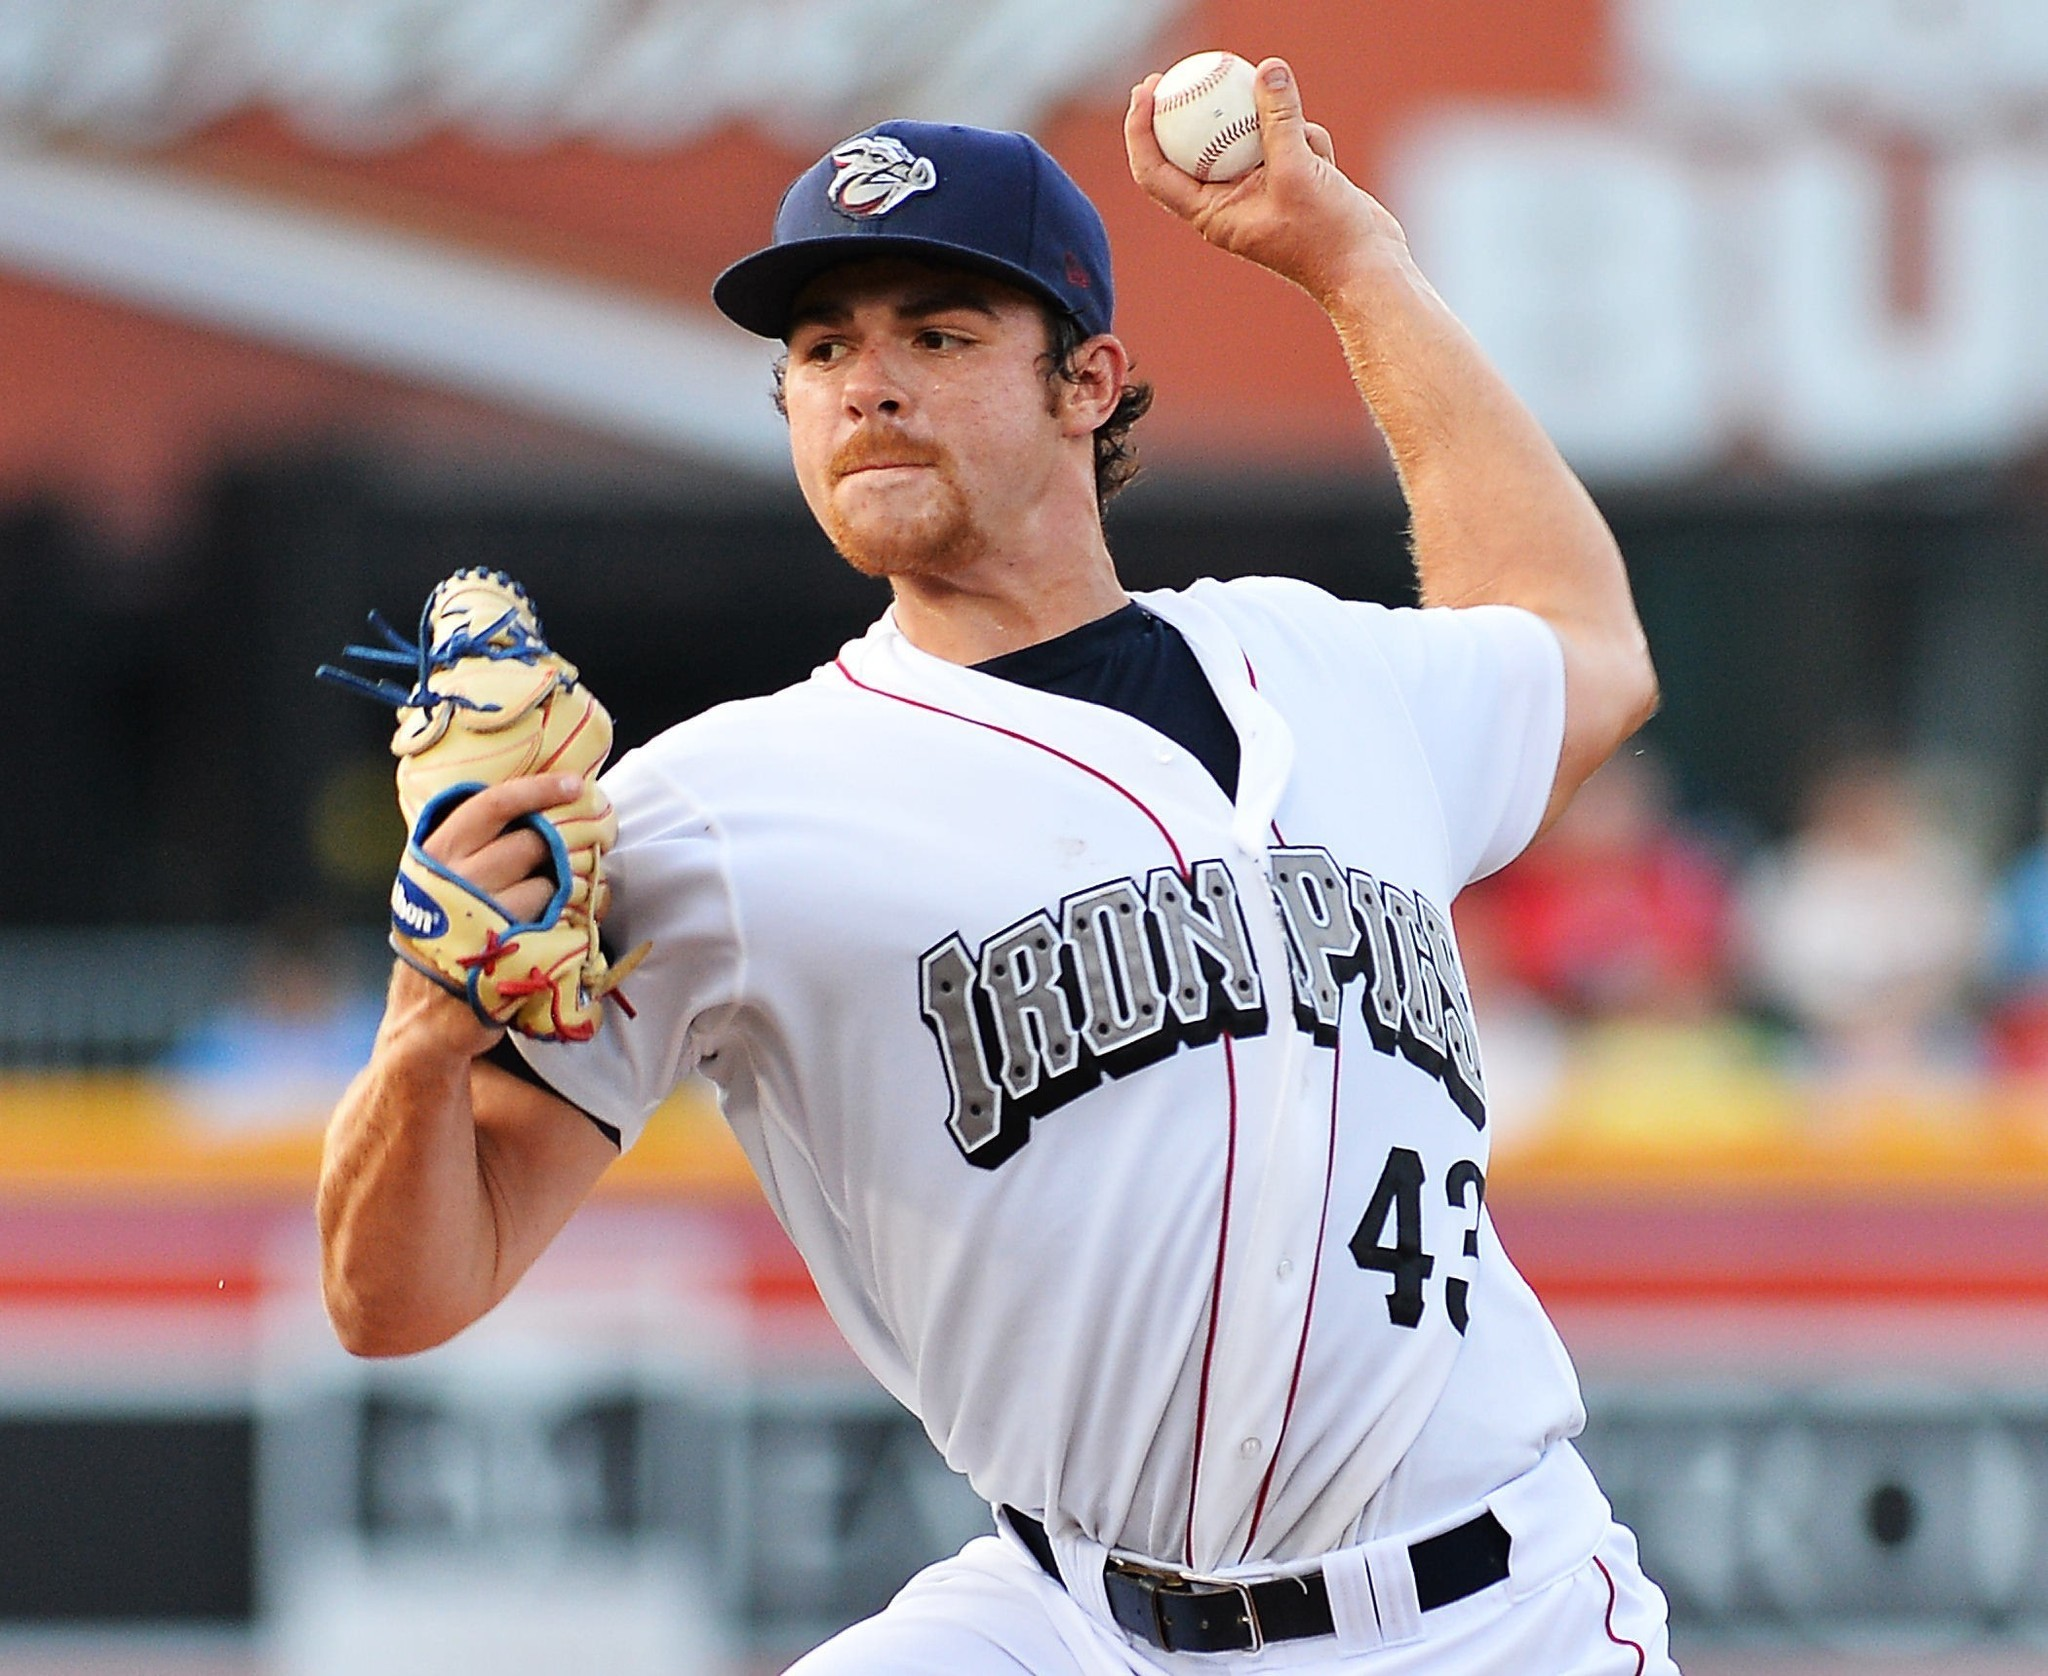 Mc-phillies-trade-former-top-prospect-jesse-biddle-to-pirates-20160203